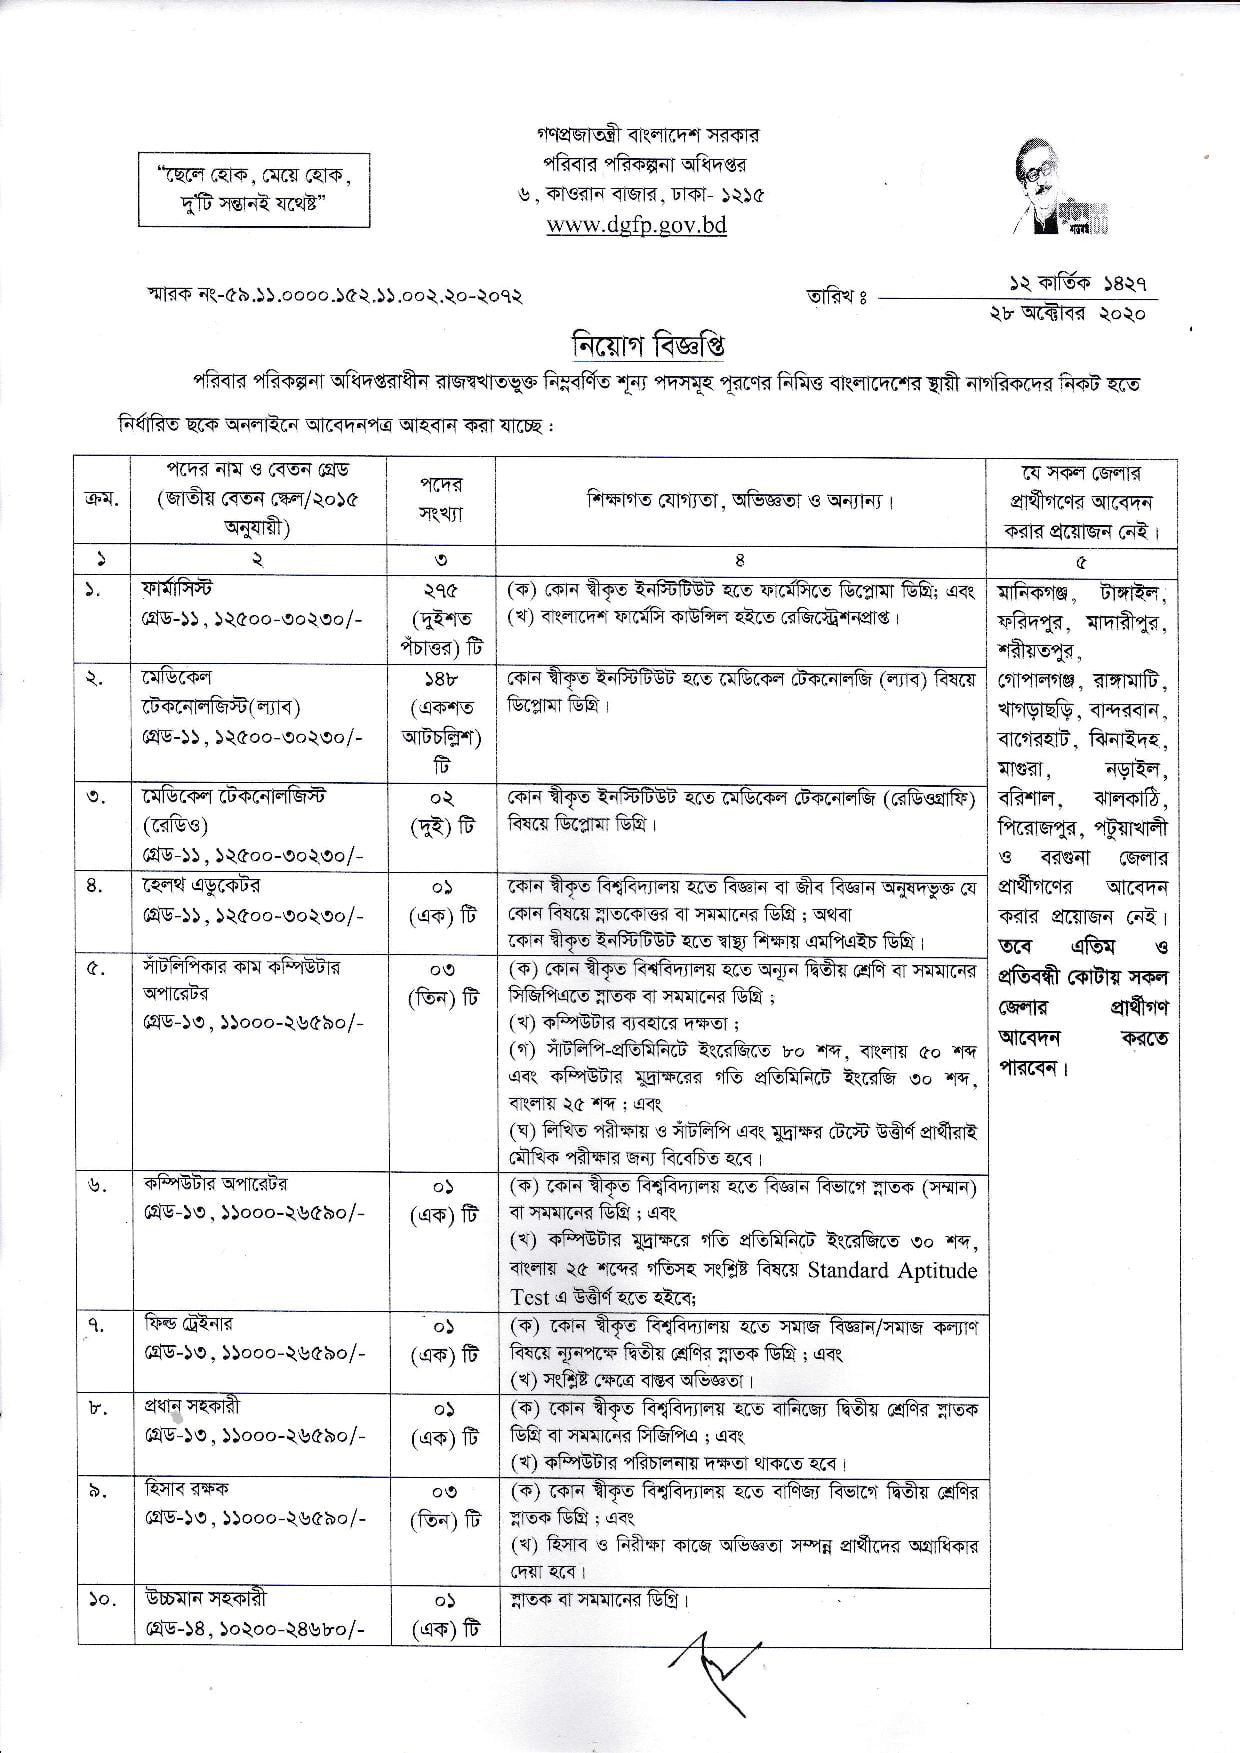 Directorate-General-of-Family-Planning-page-001